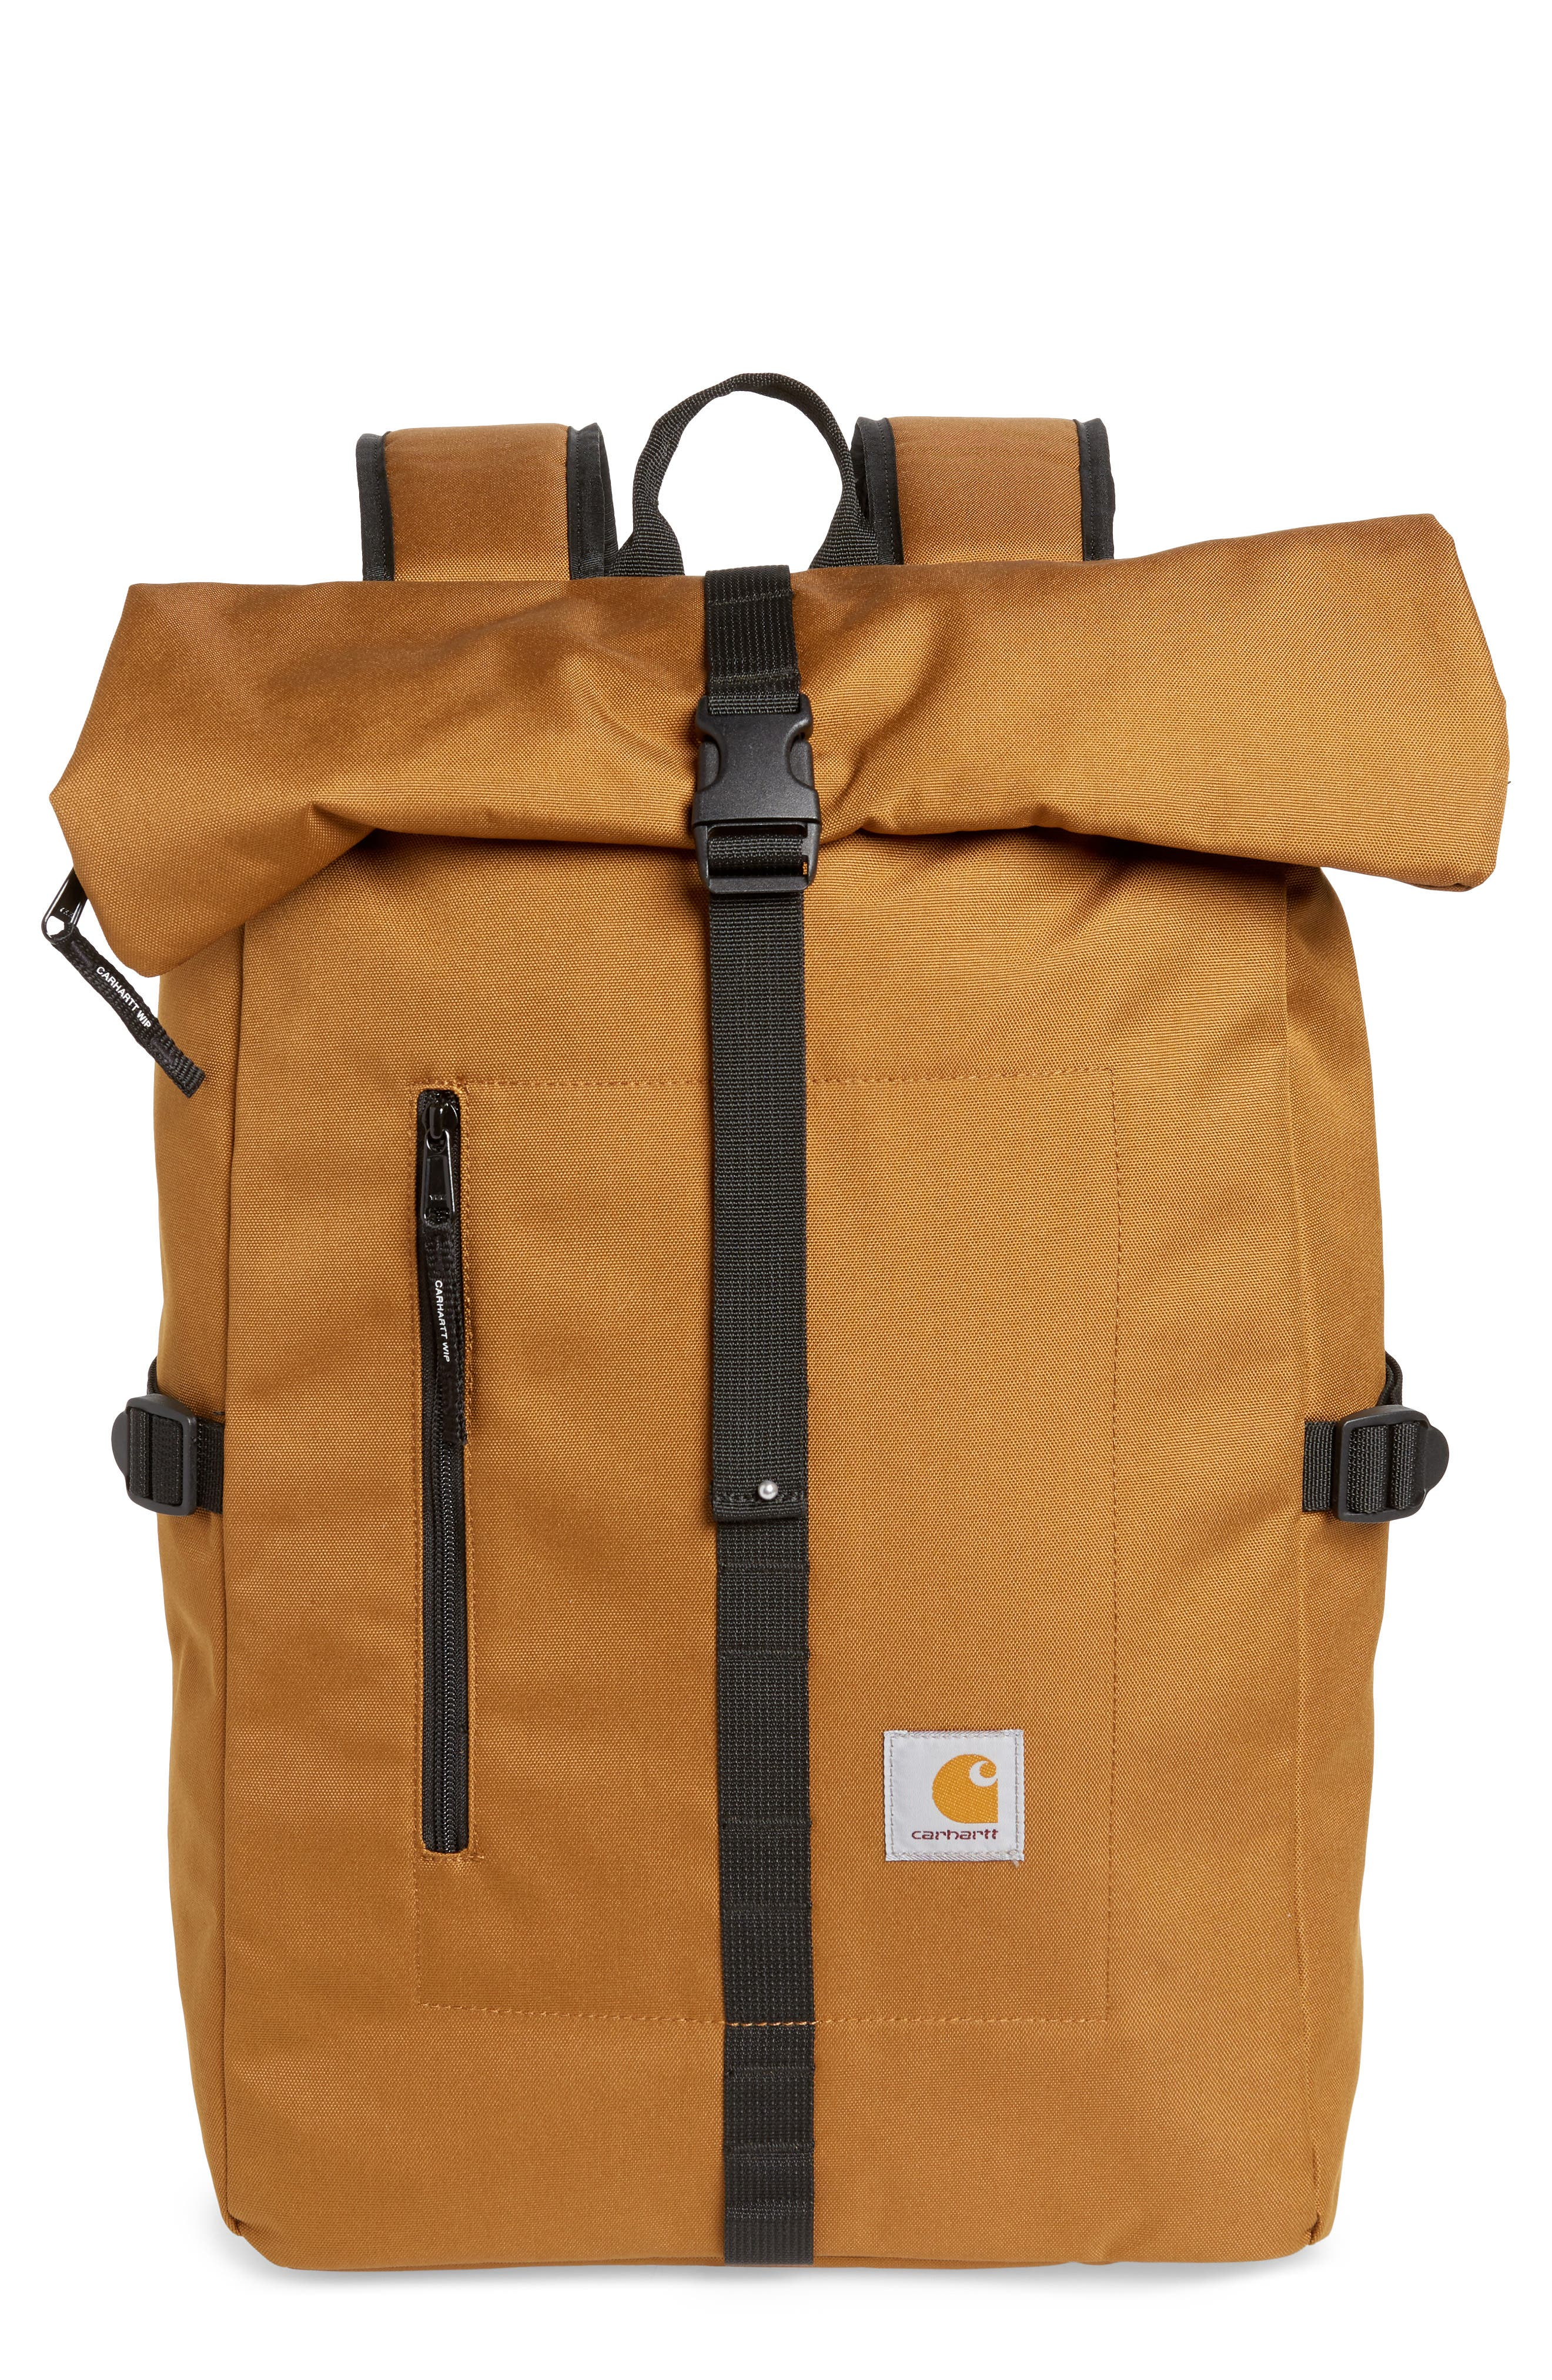 CARHARTT WORK IN PROGRESS Phil Backpack - Brown in Hamilton Brown